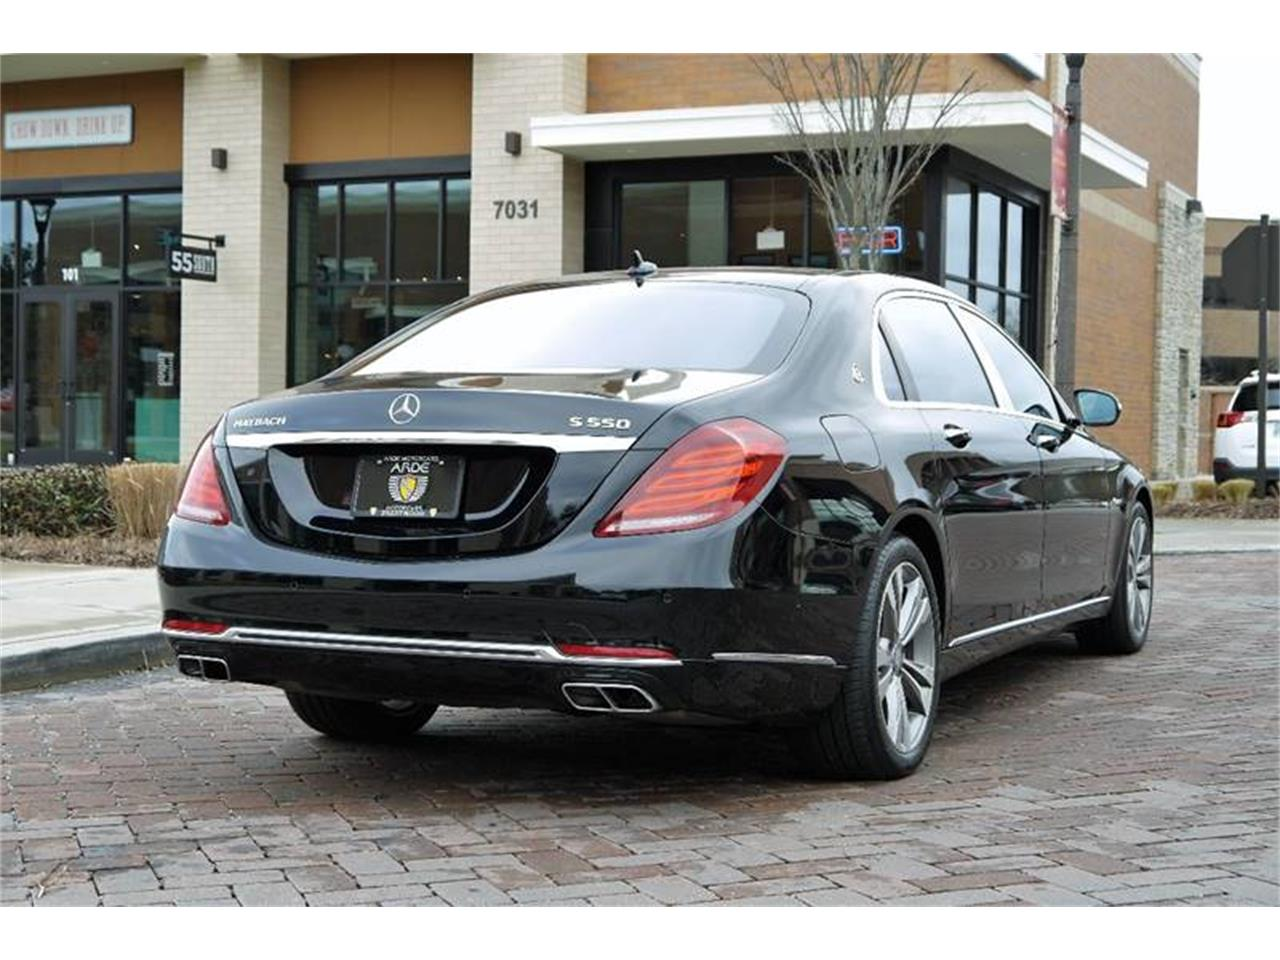 Large Picture of 2017 Mercedes-Benz S-Class located in Brentwood Tennessee - $169,000.00 Offered by Arde Motorcars - MOD1